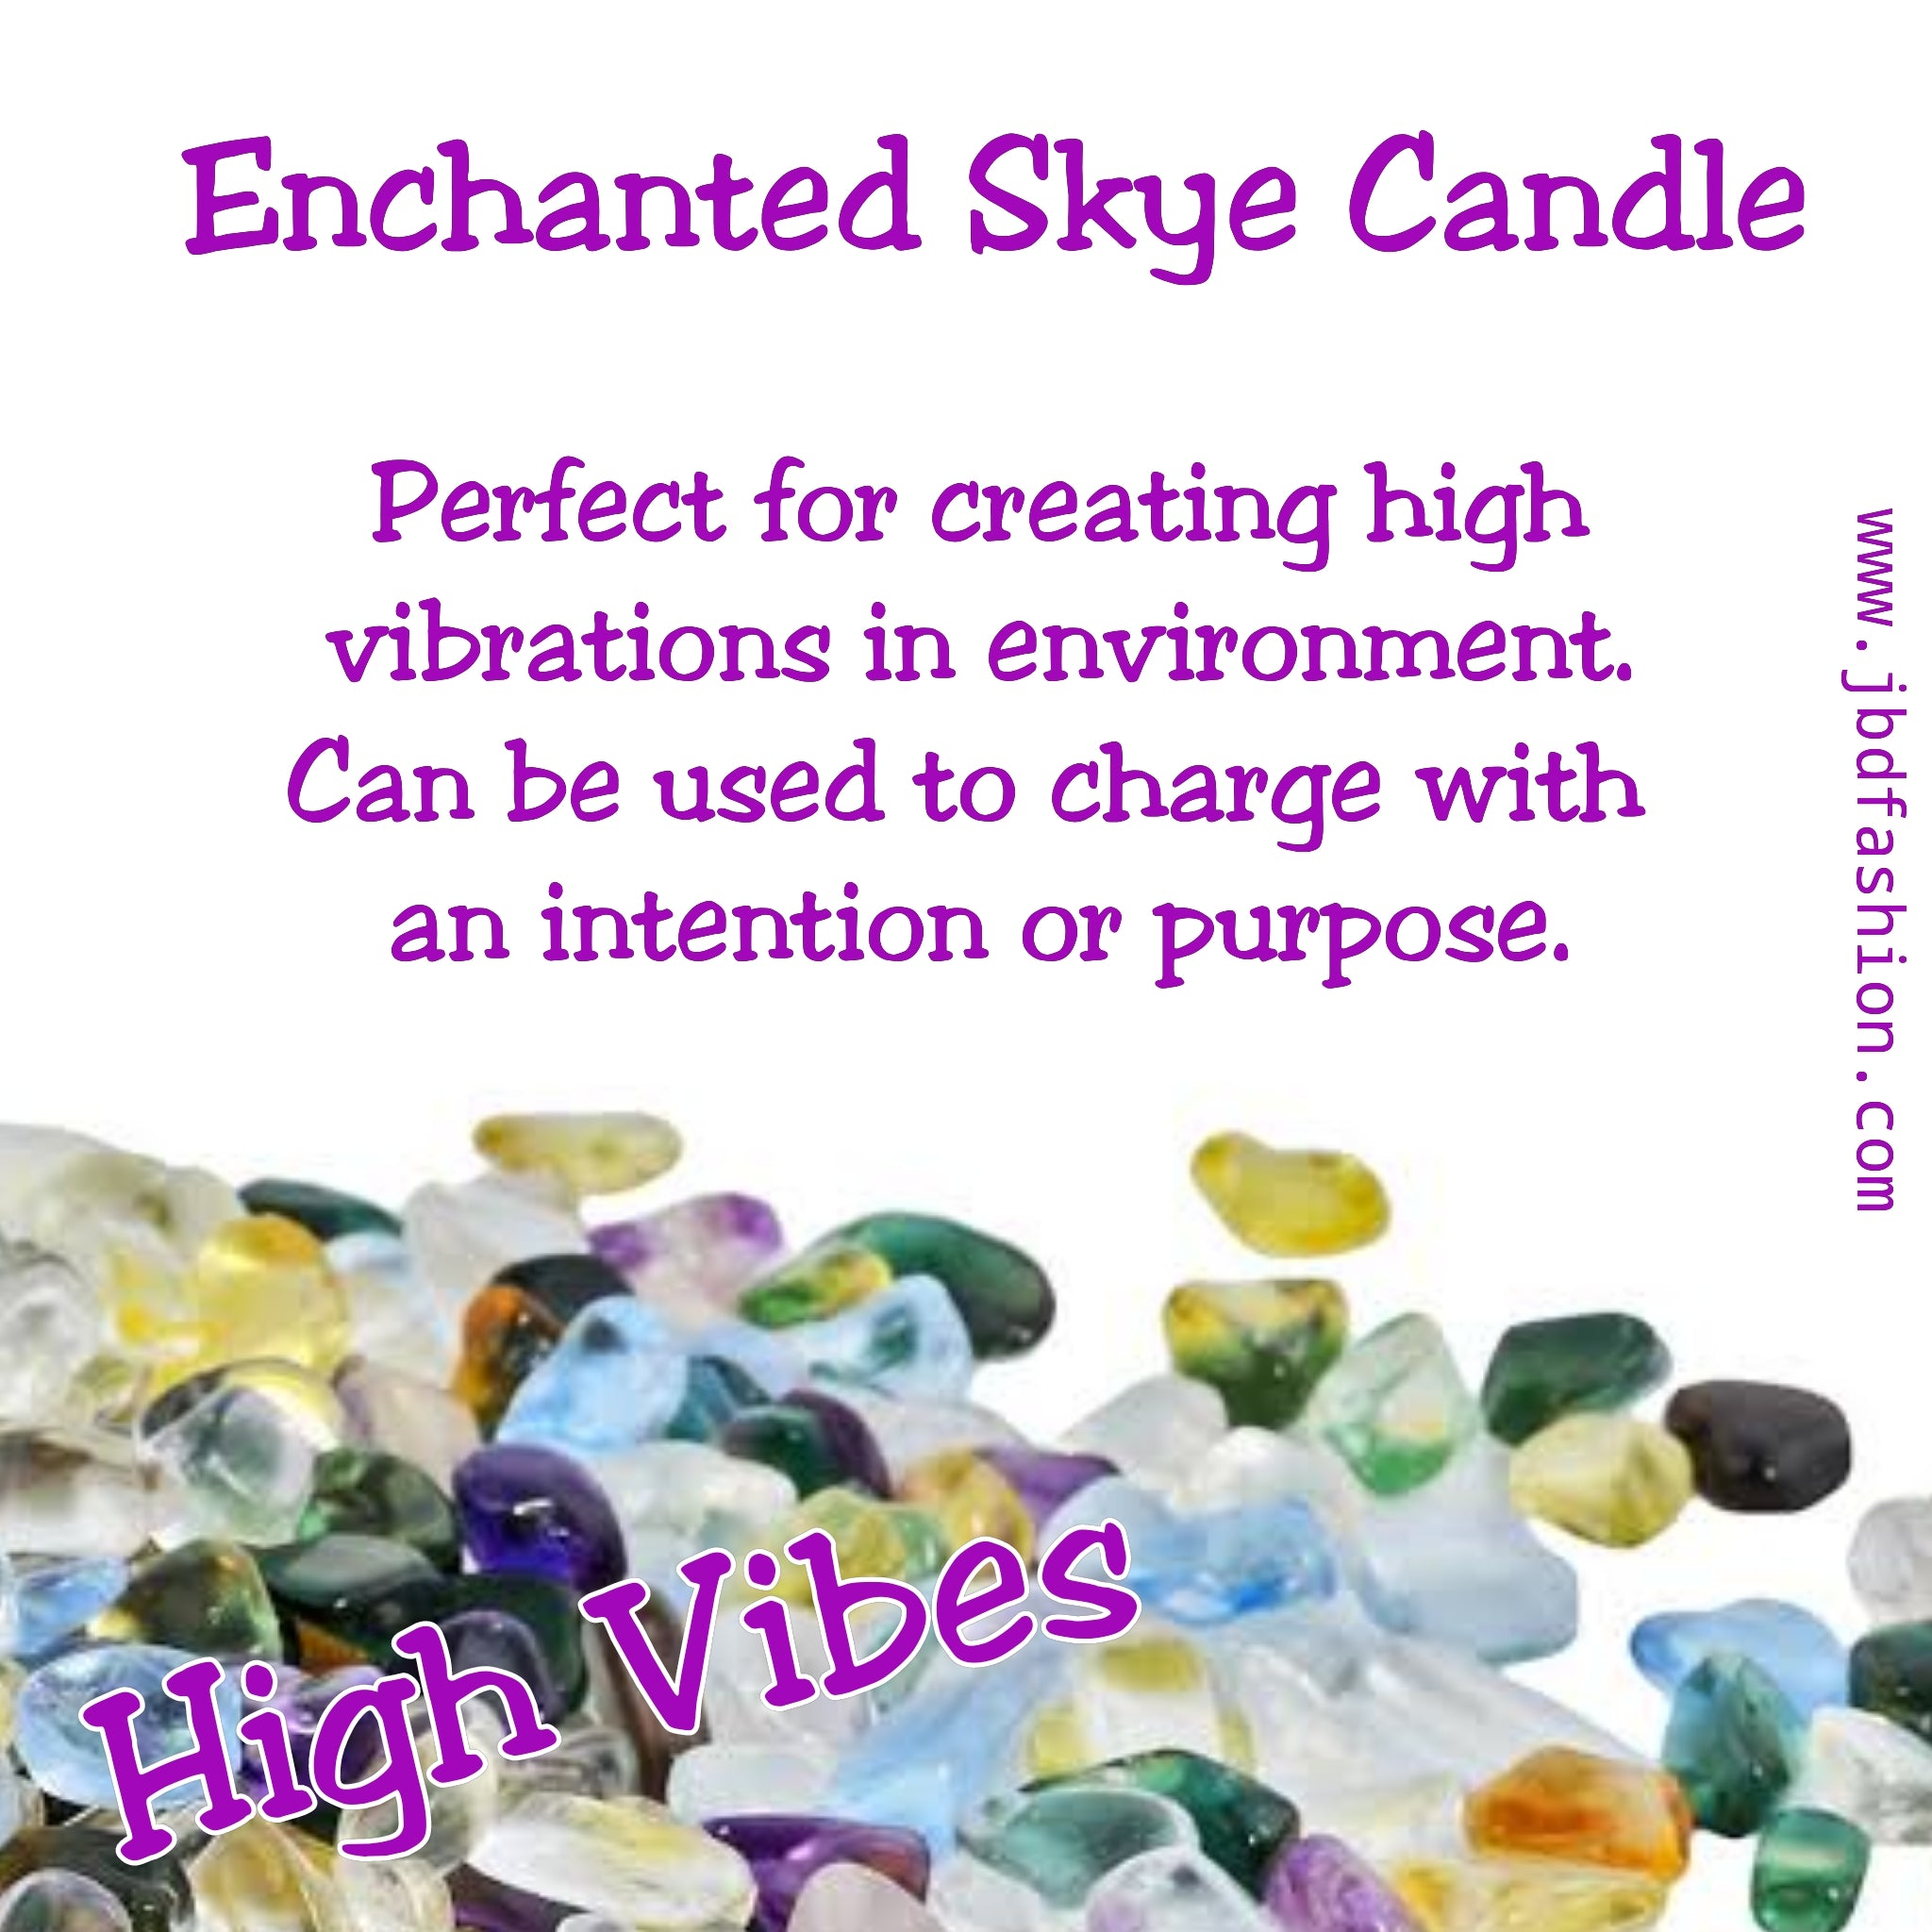 Enchanted Skye Candle -  High Vibes - JBD